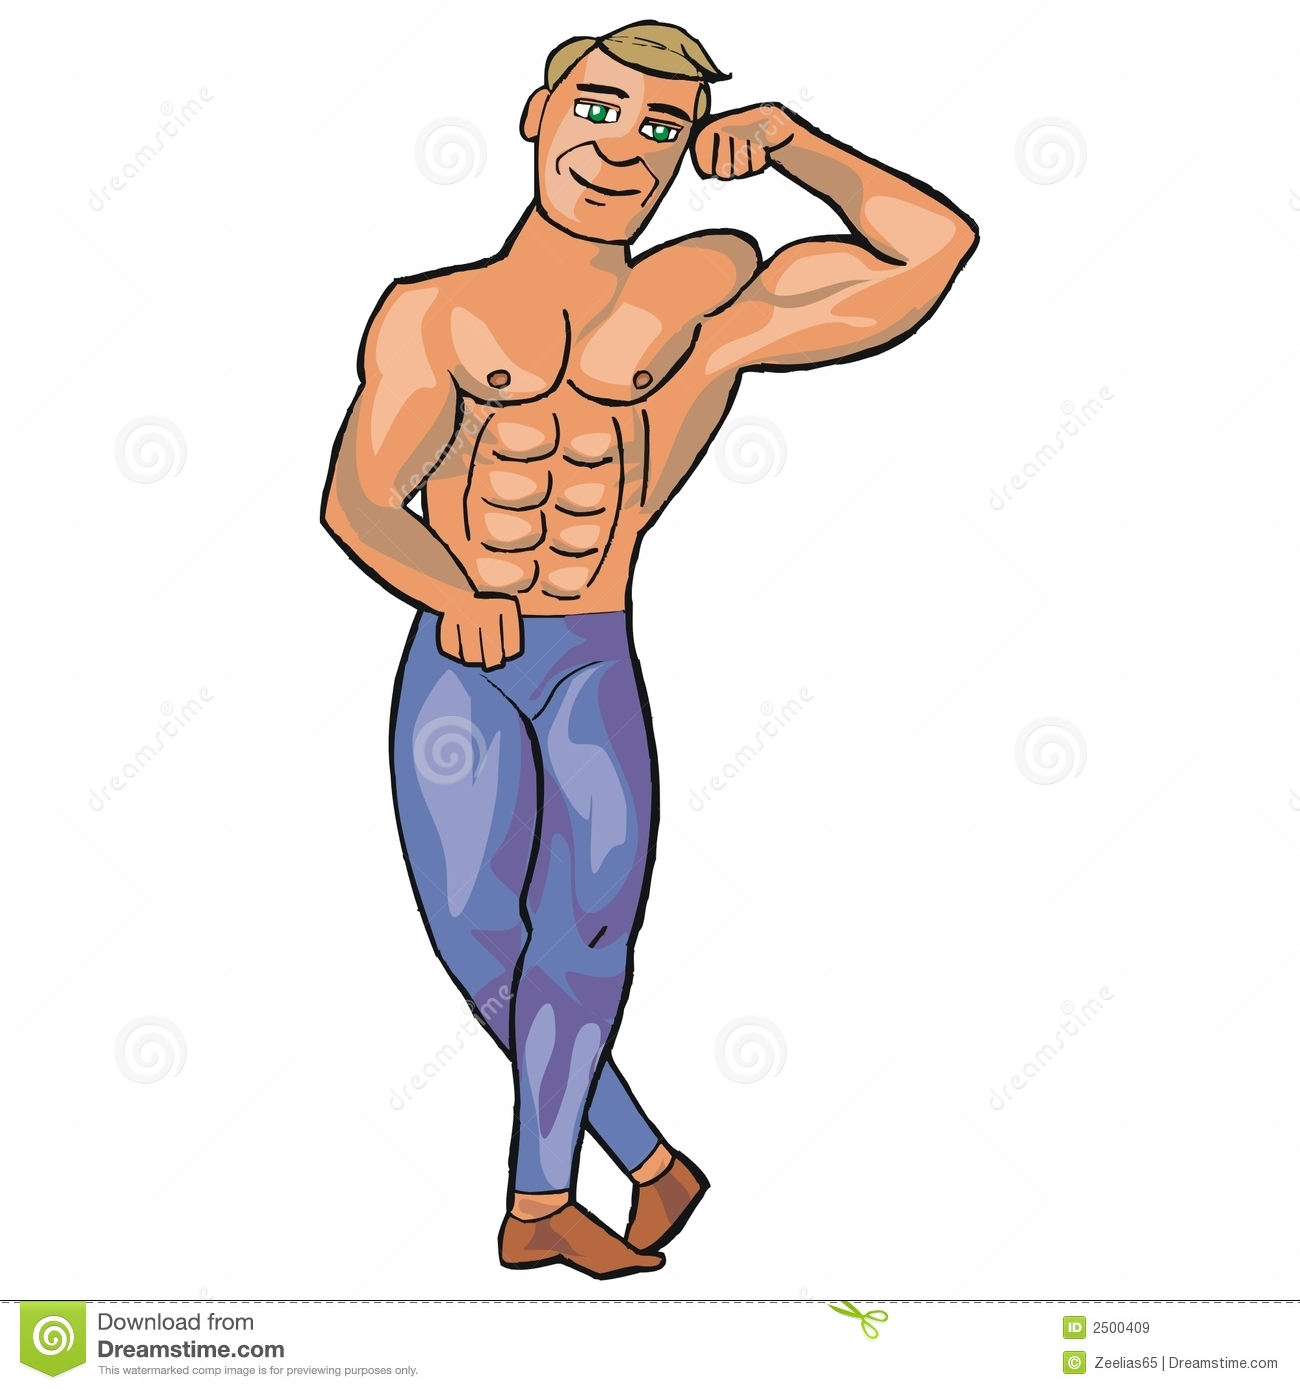 clipart strong man - photo #27